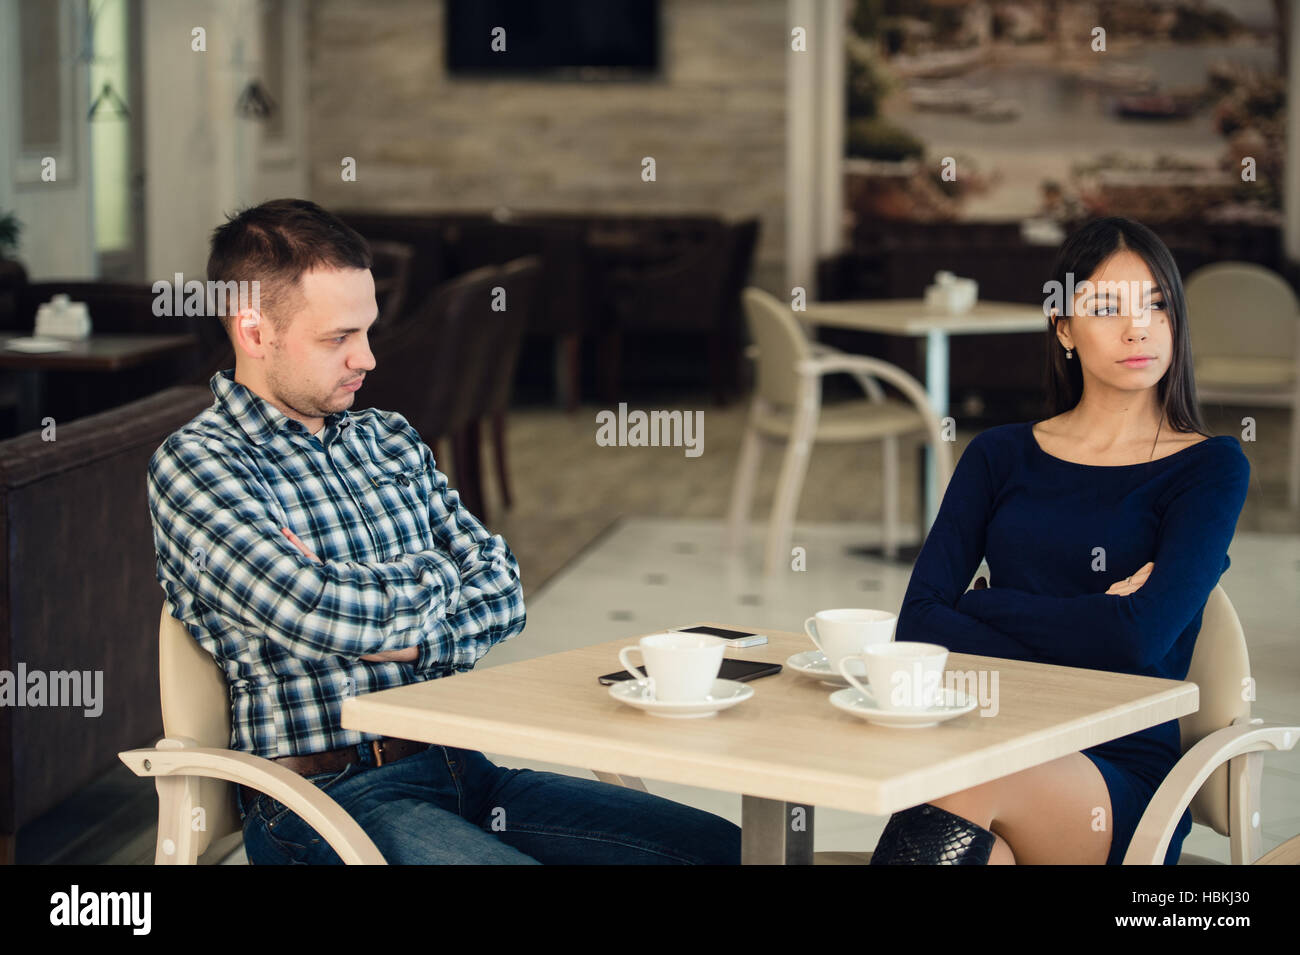 Young unhappy married couple having serious quarrel at cafe - Stock Image